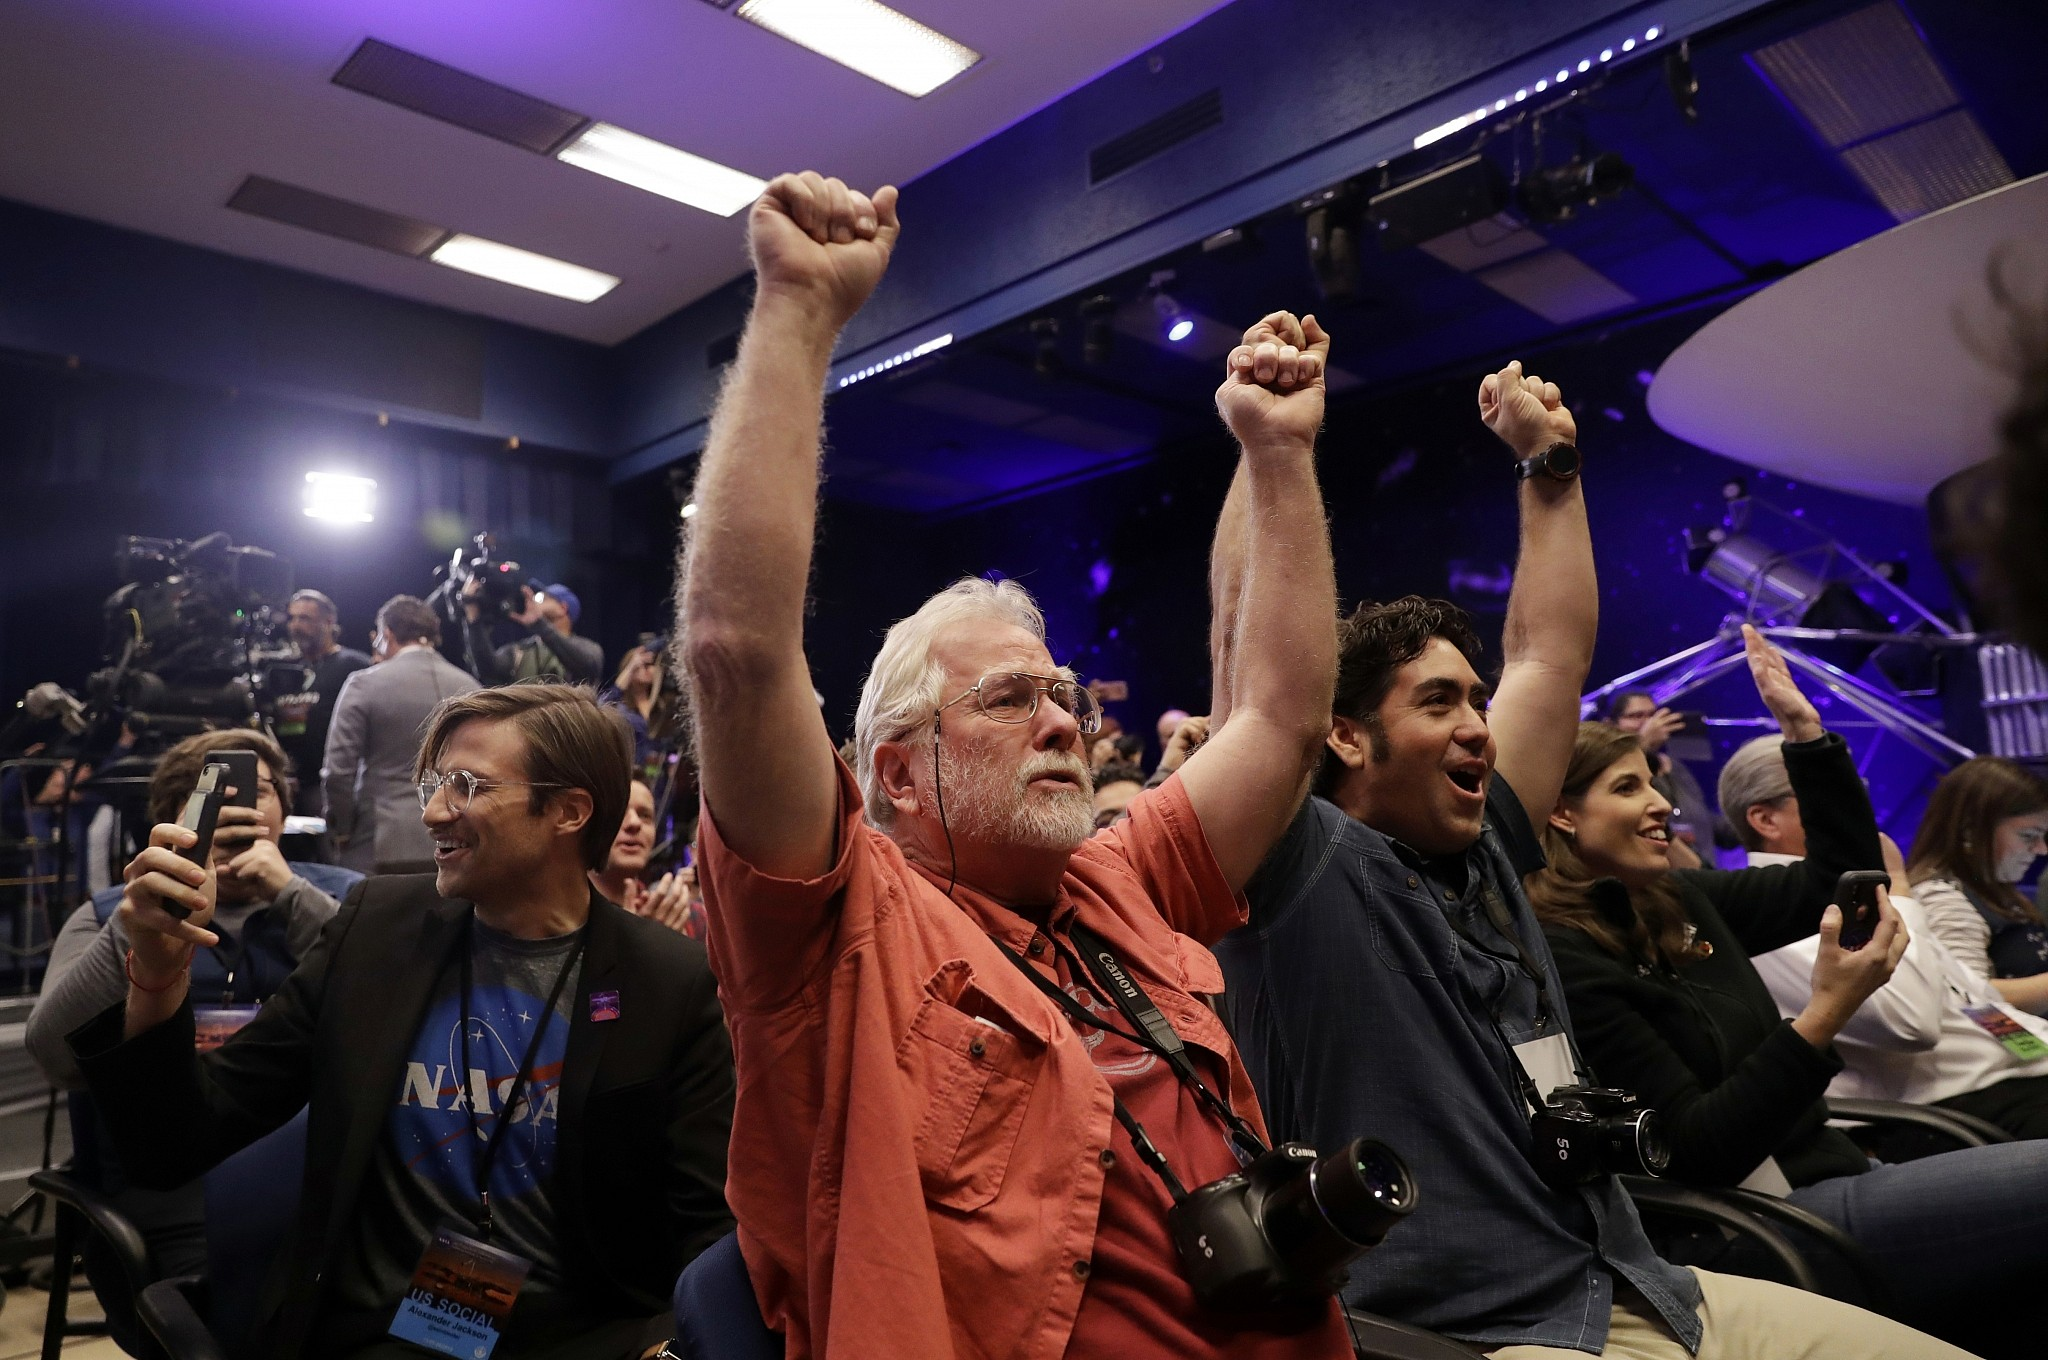 People at NASA's Jet Propulsion Laboratory in Pasadena California celebrate as the In Sight lander touches down on Mars